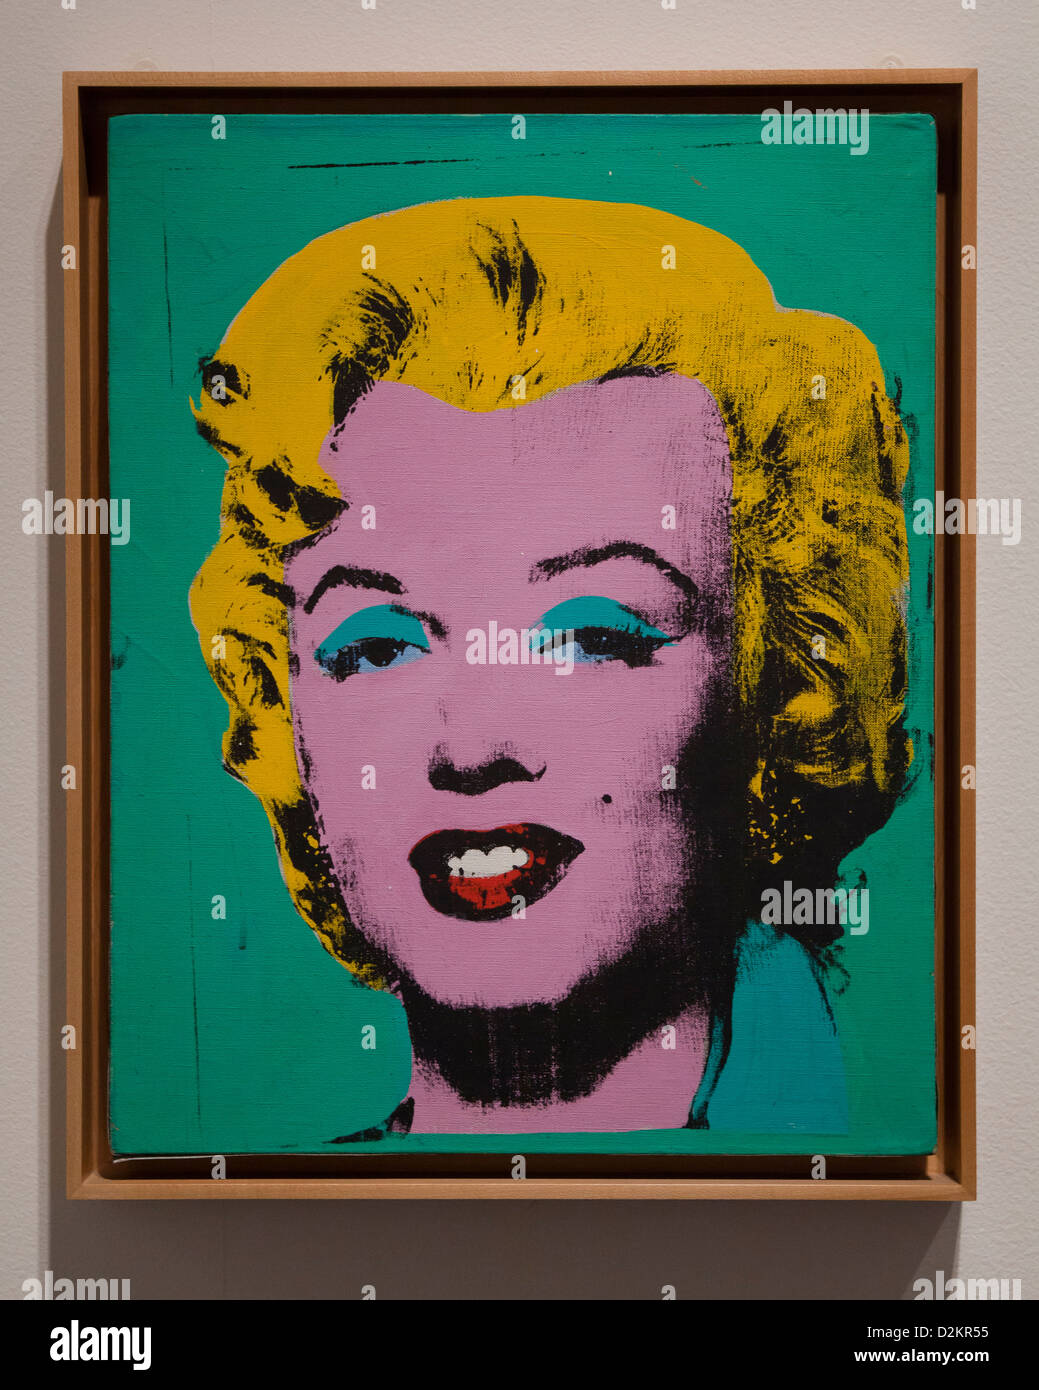 Marilyn Pop Art Andy Warhol Warhol Marilyn Stockfotos And Warhol Marilyn Bilder Alamy